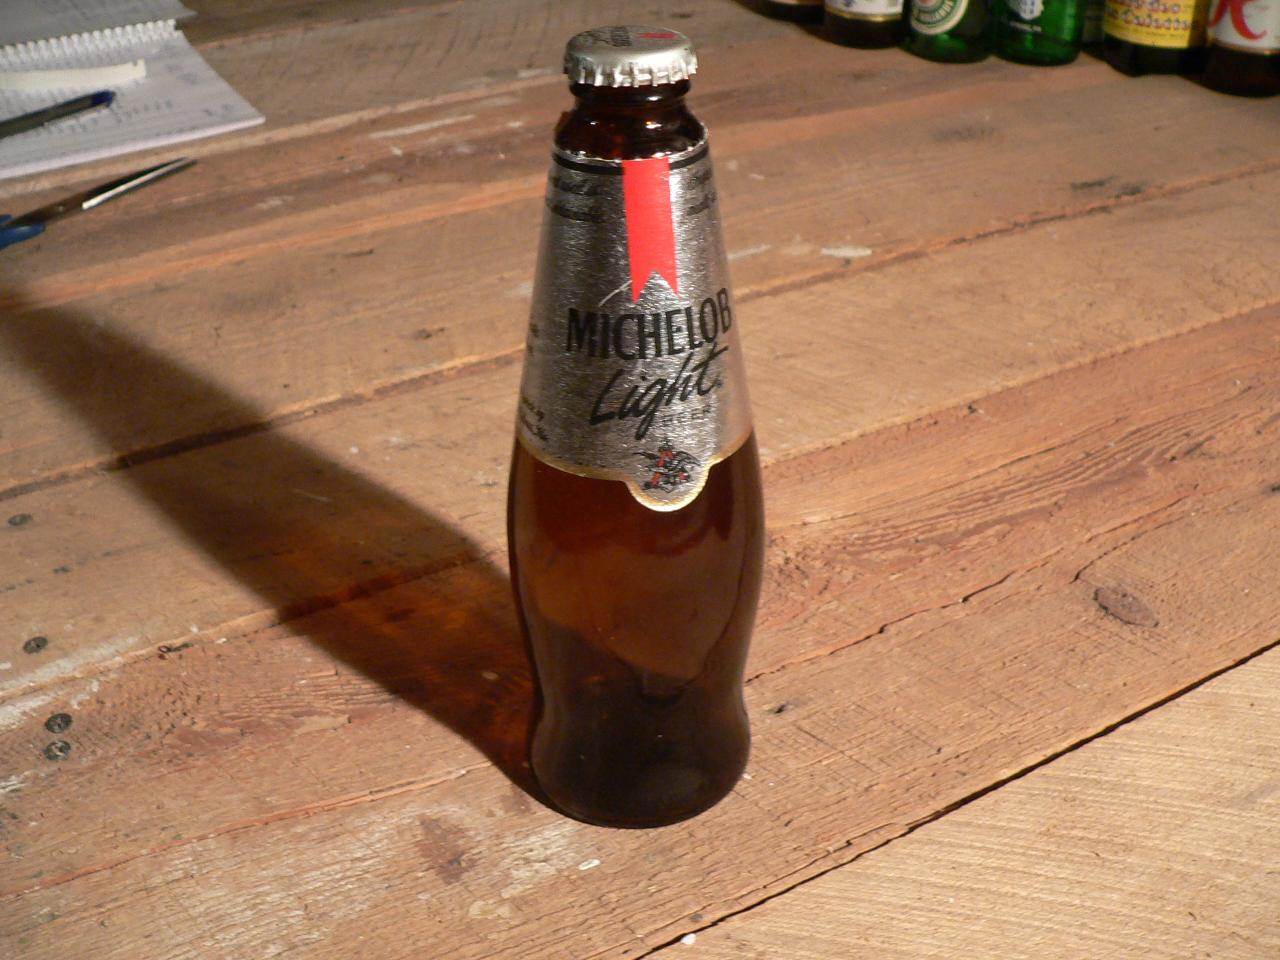 Biere michelob light # 4739.39